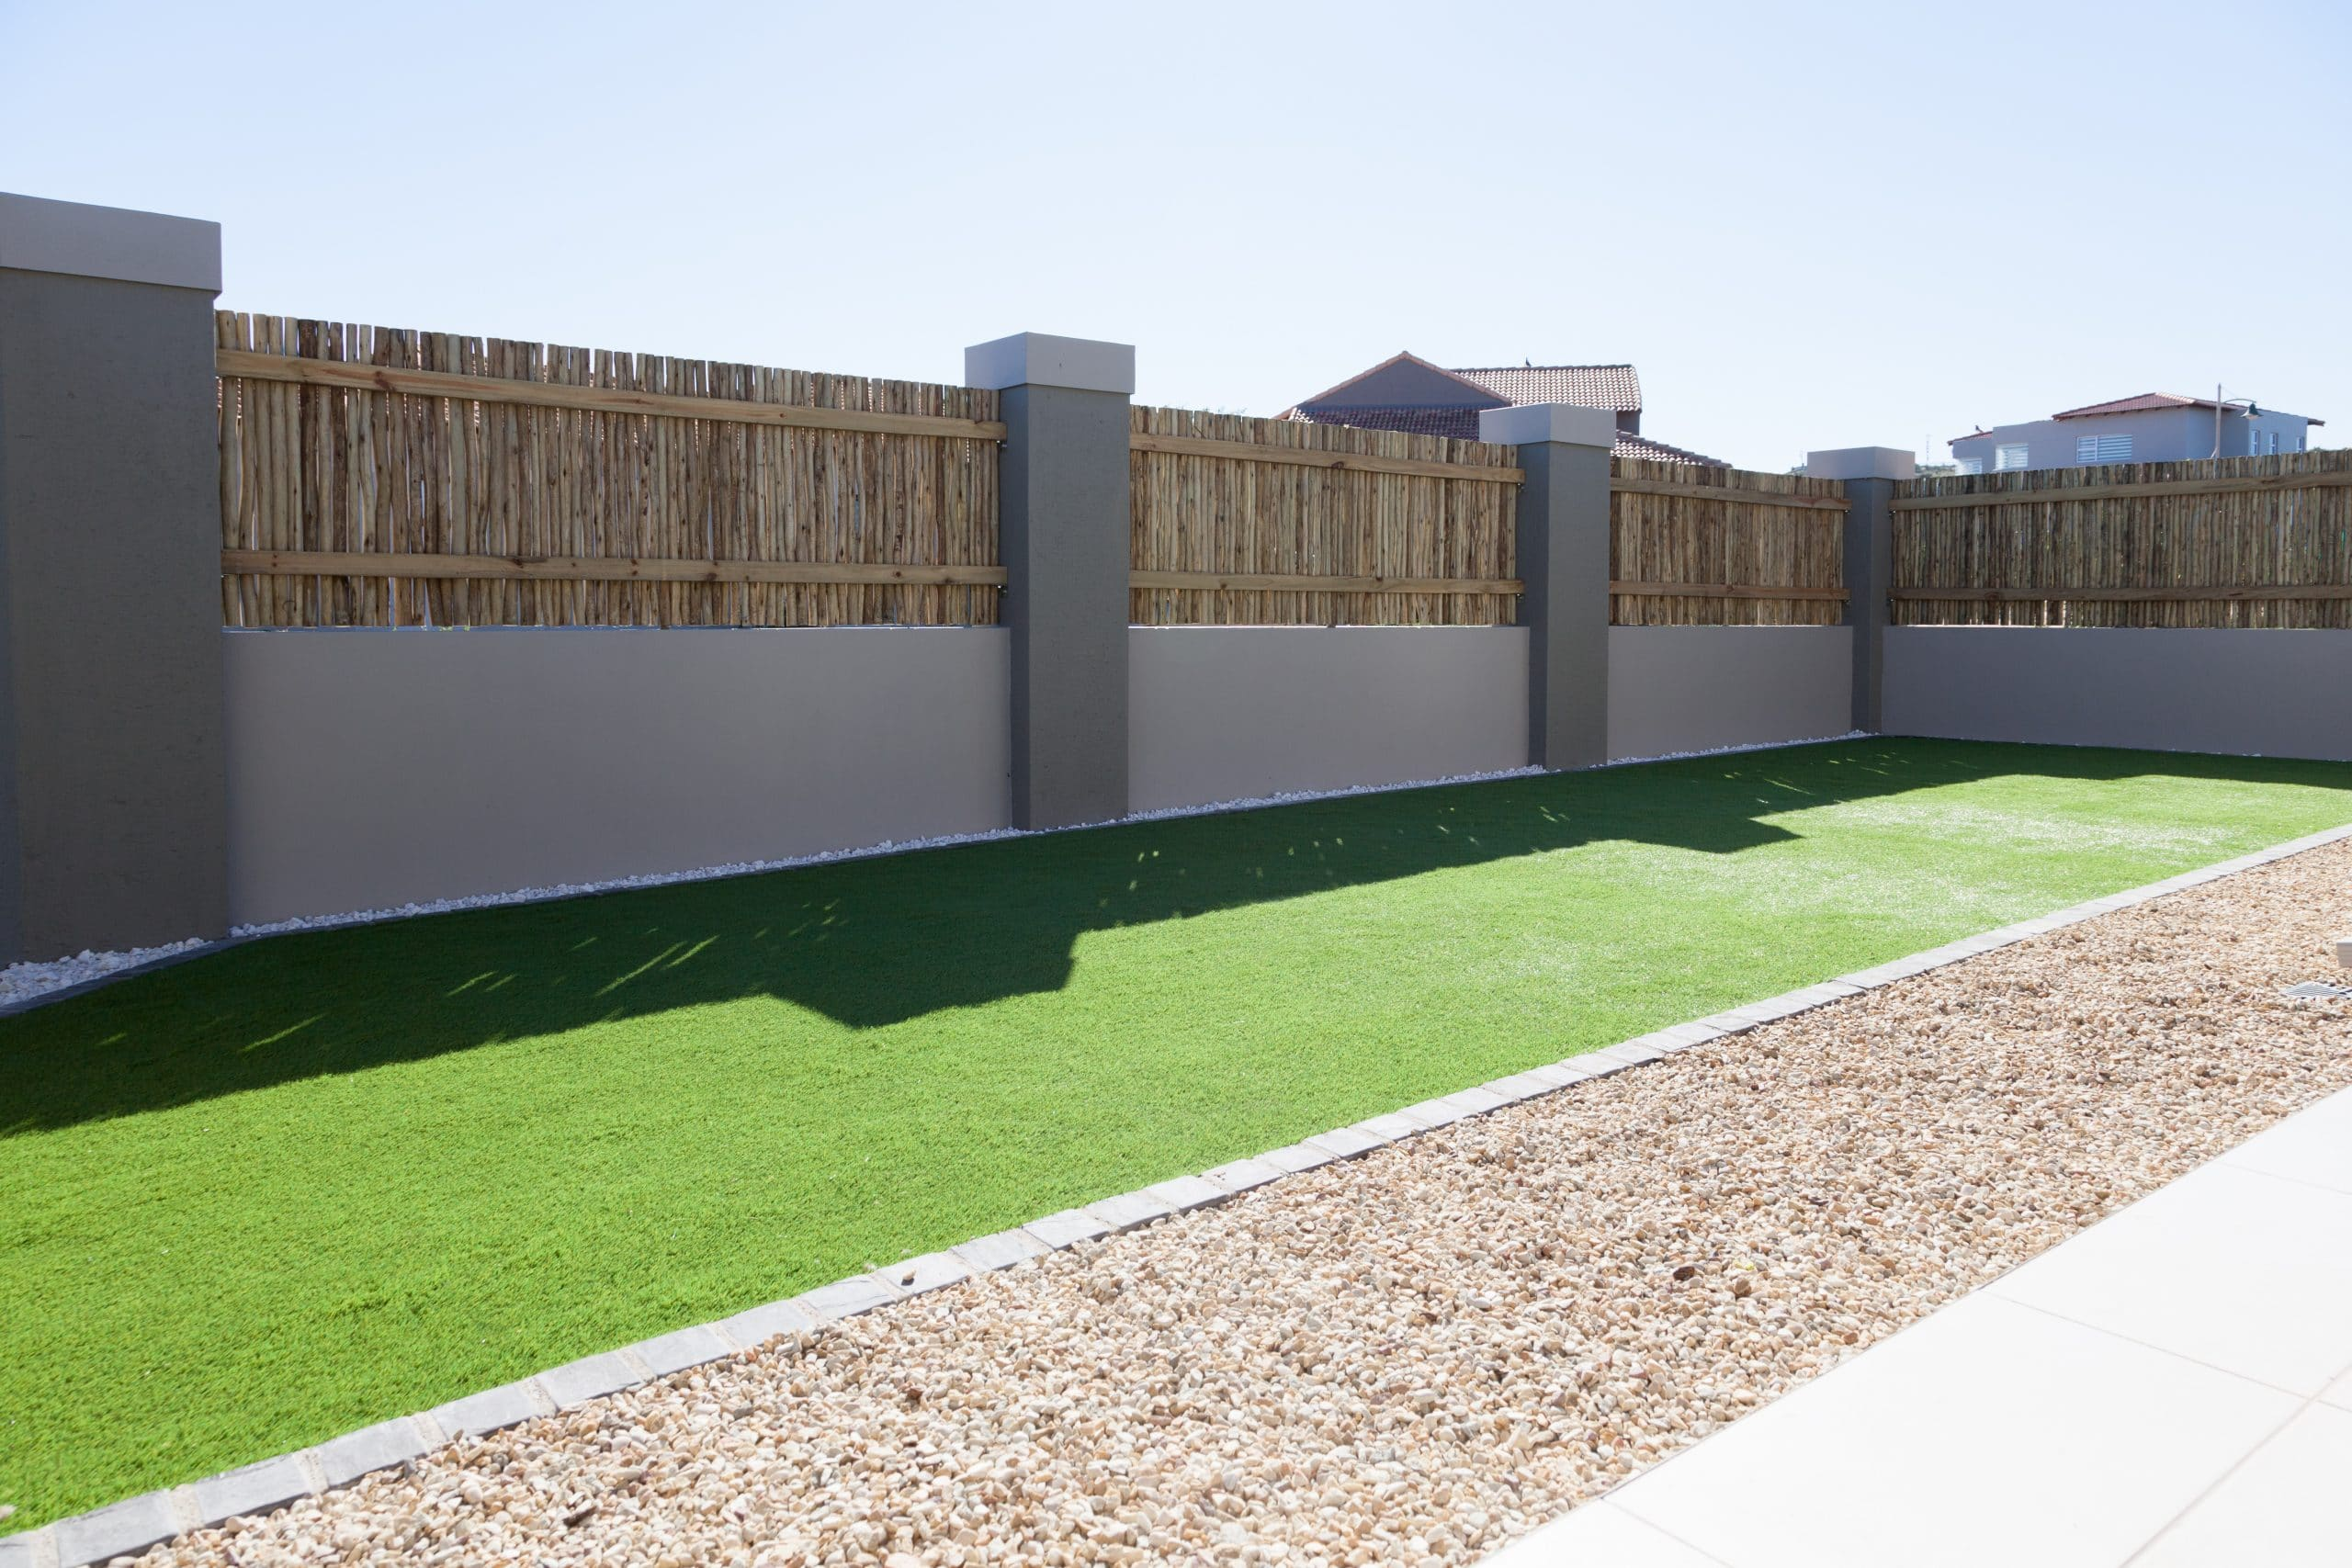 artificial lawn with aggregate and wattle fenced enclosement langebaan country estate